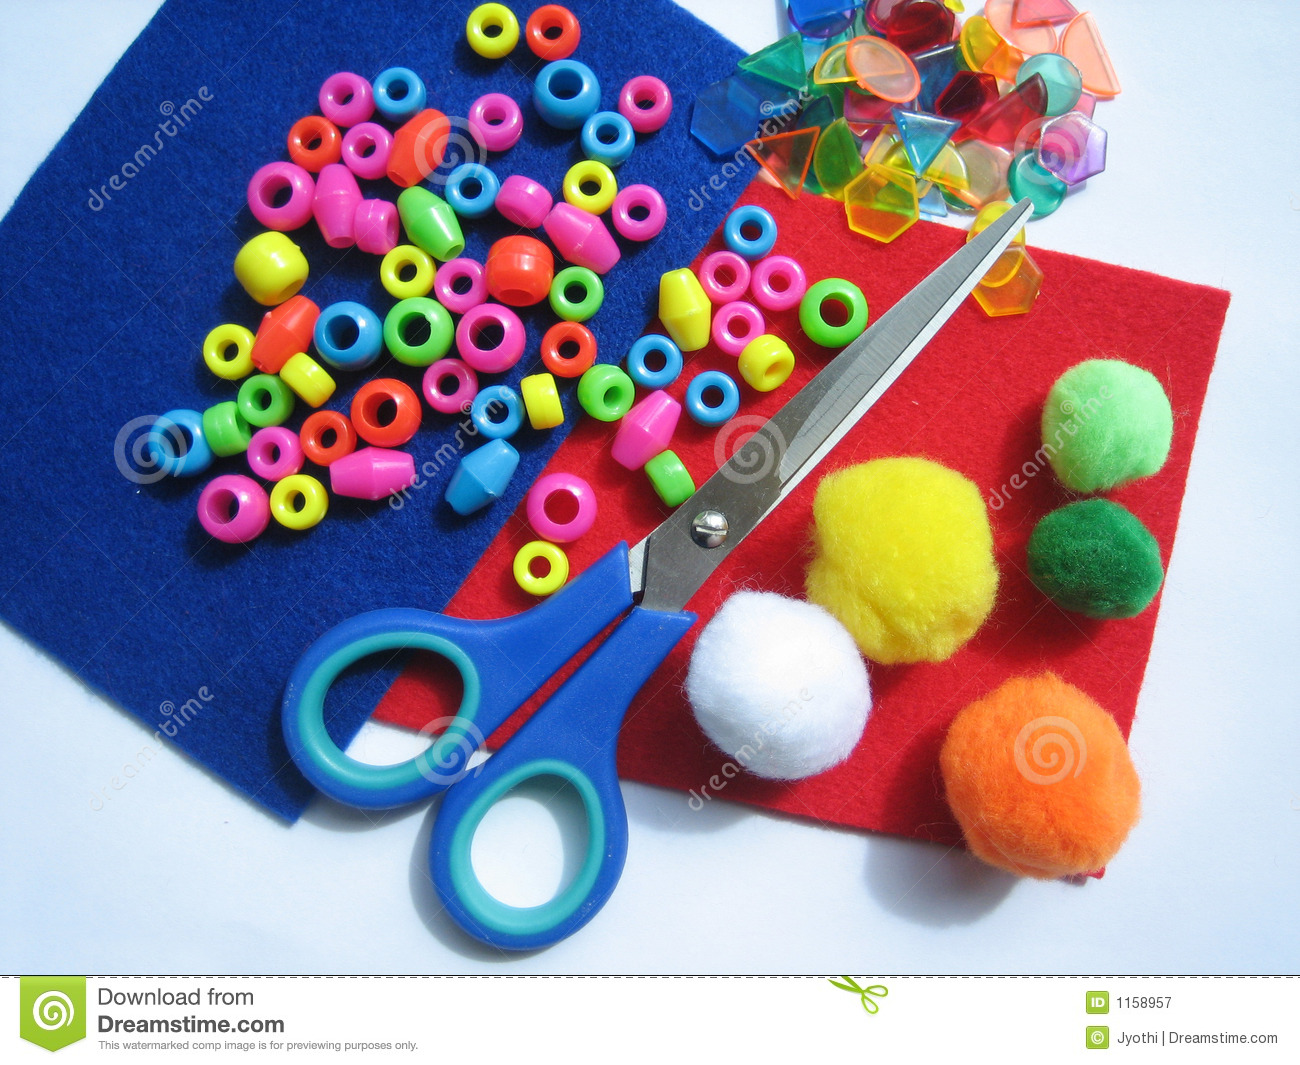 Http Www Dreamstime Com Royalty Free Stock Photography Kids Craft Items Image1158957